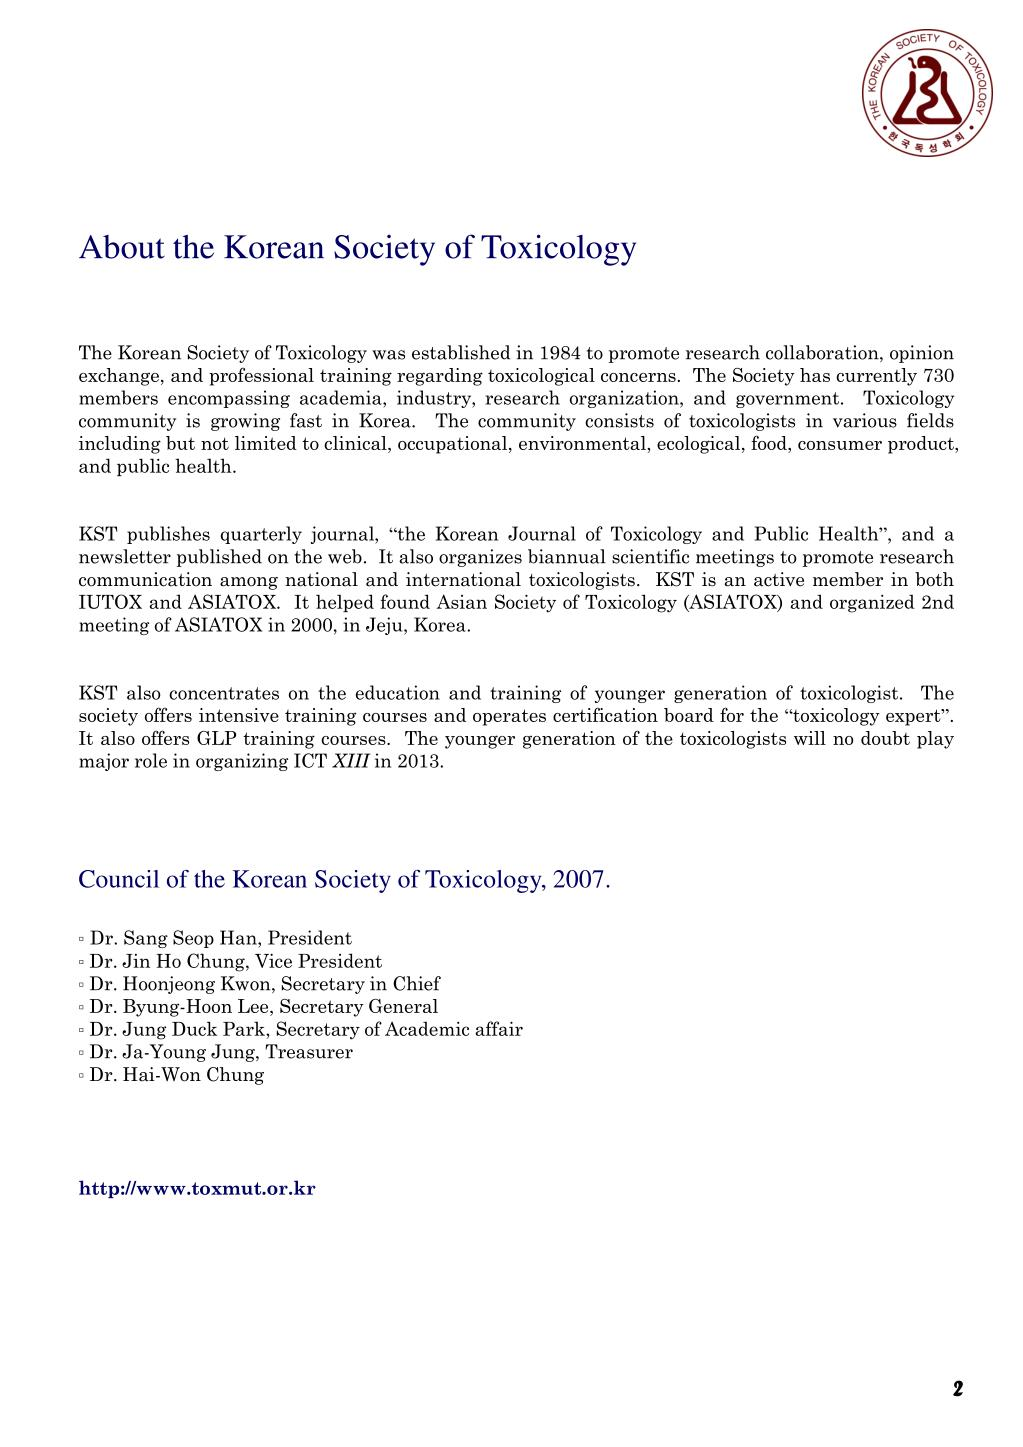 About the Korean Society of Toxicology